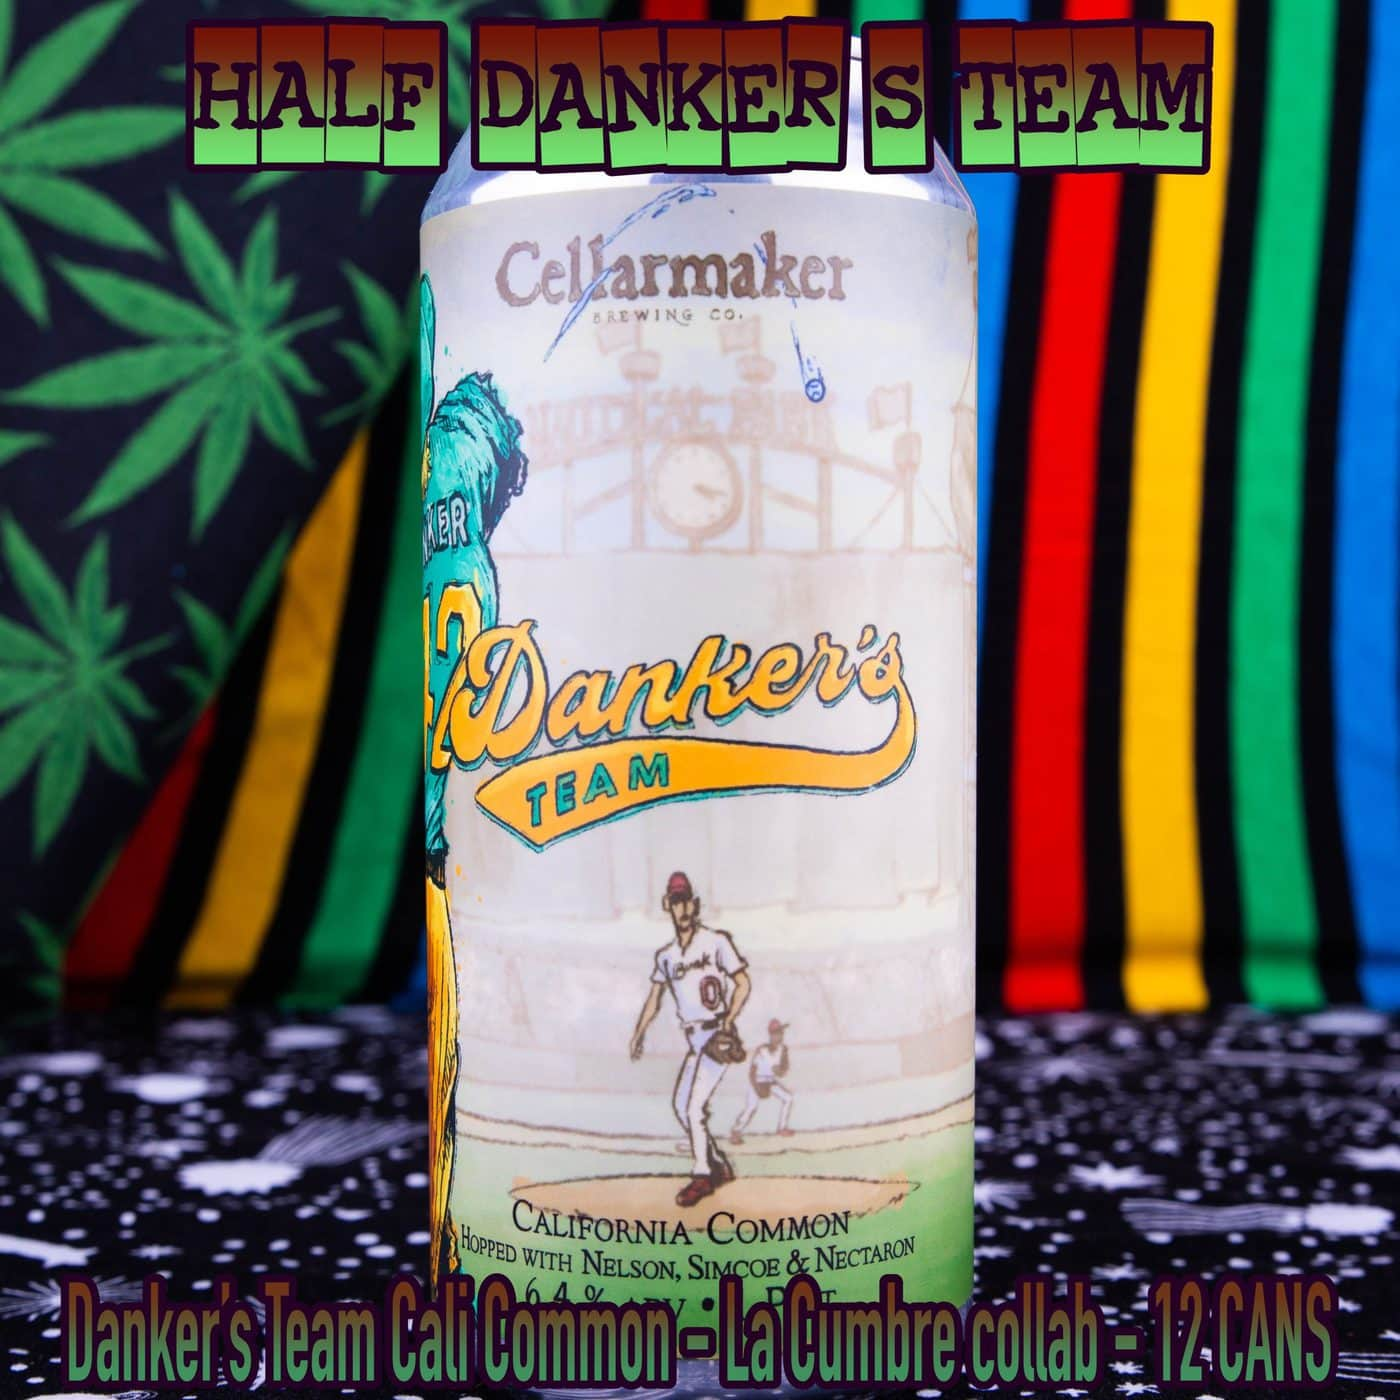 Half Case 12 CANS Danker's Team Cali Common – La Cumbre Collab – Shipping Out Tuesday 4/13 For Next Day Delivery*